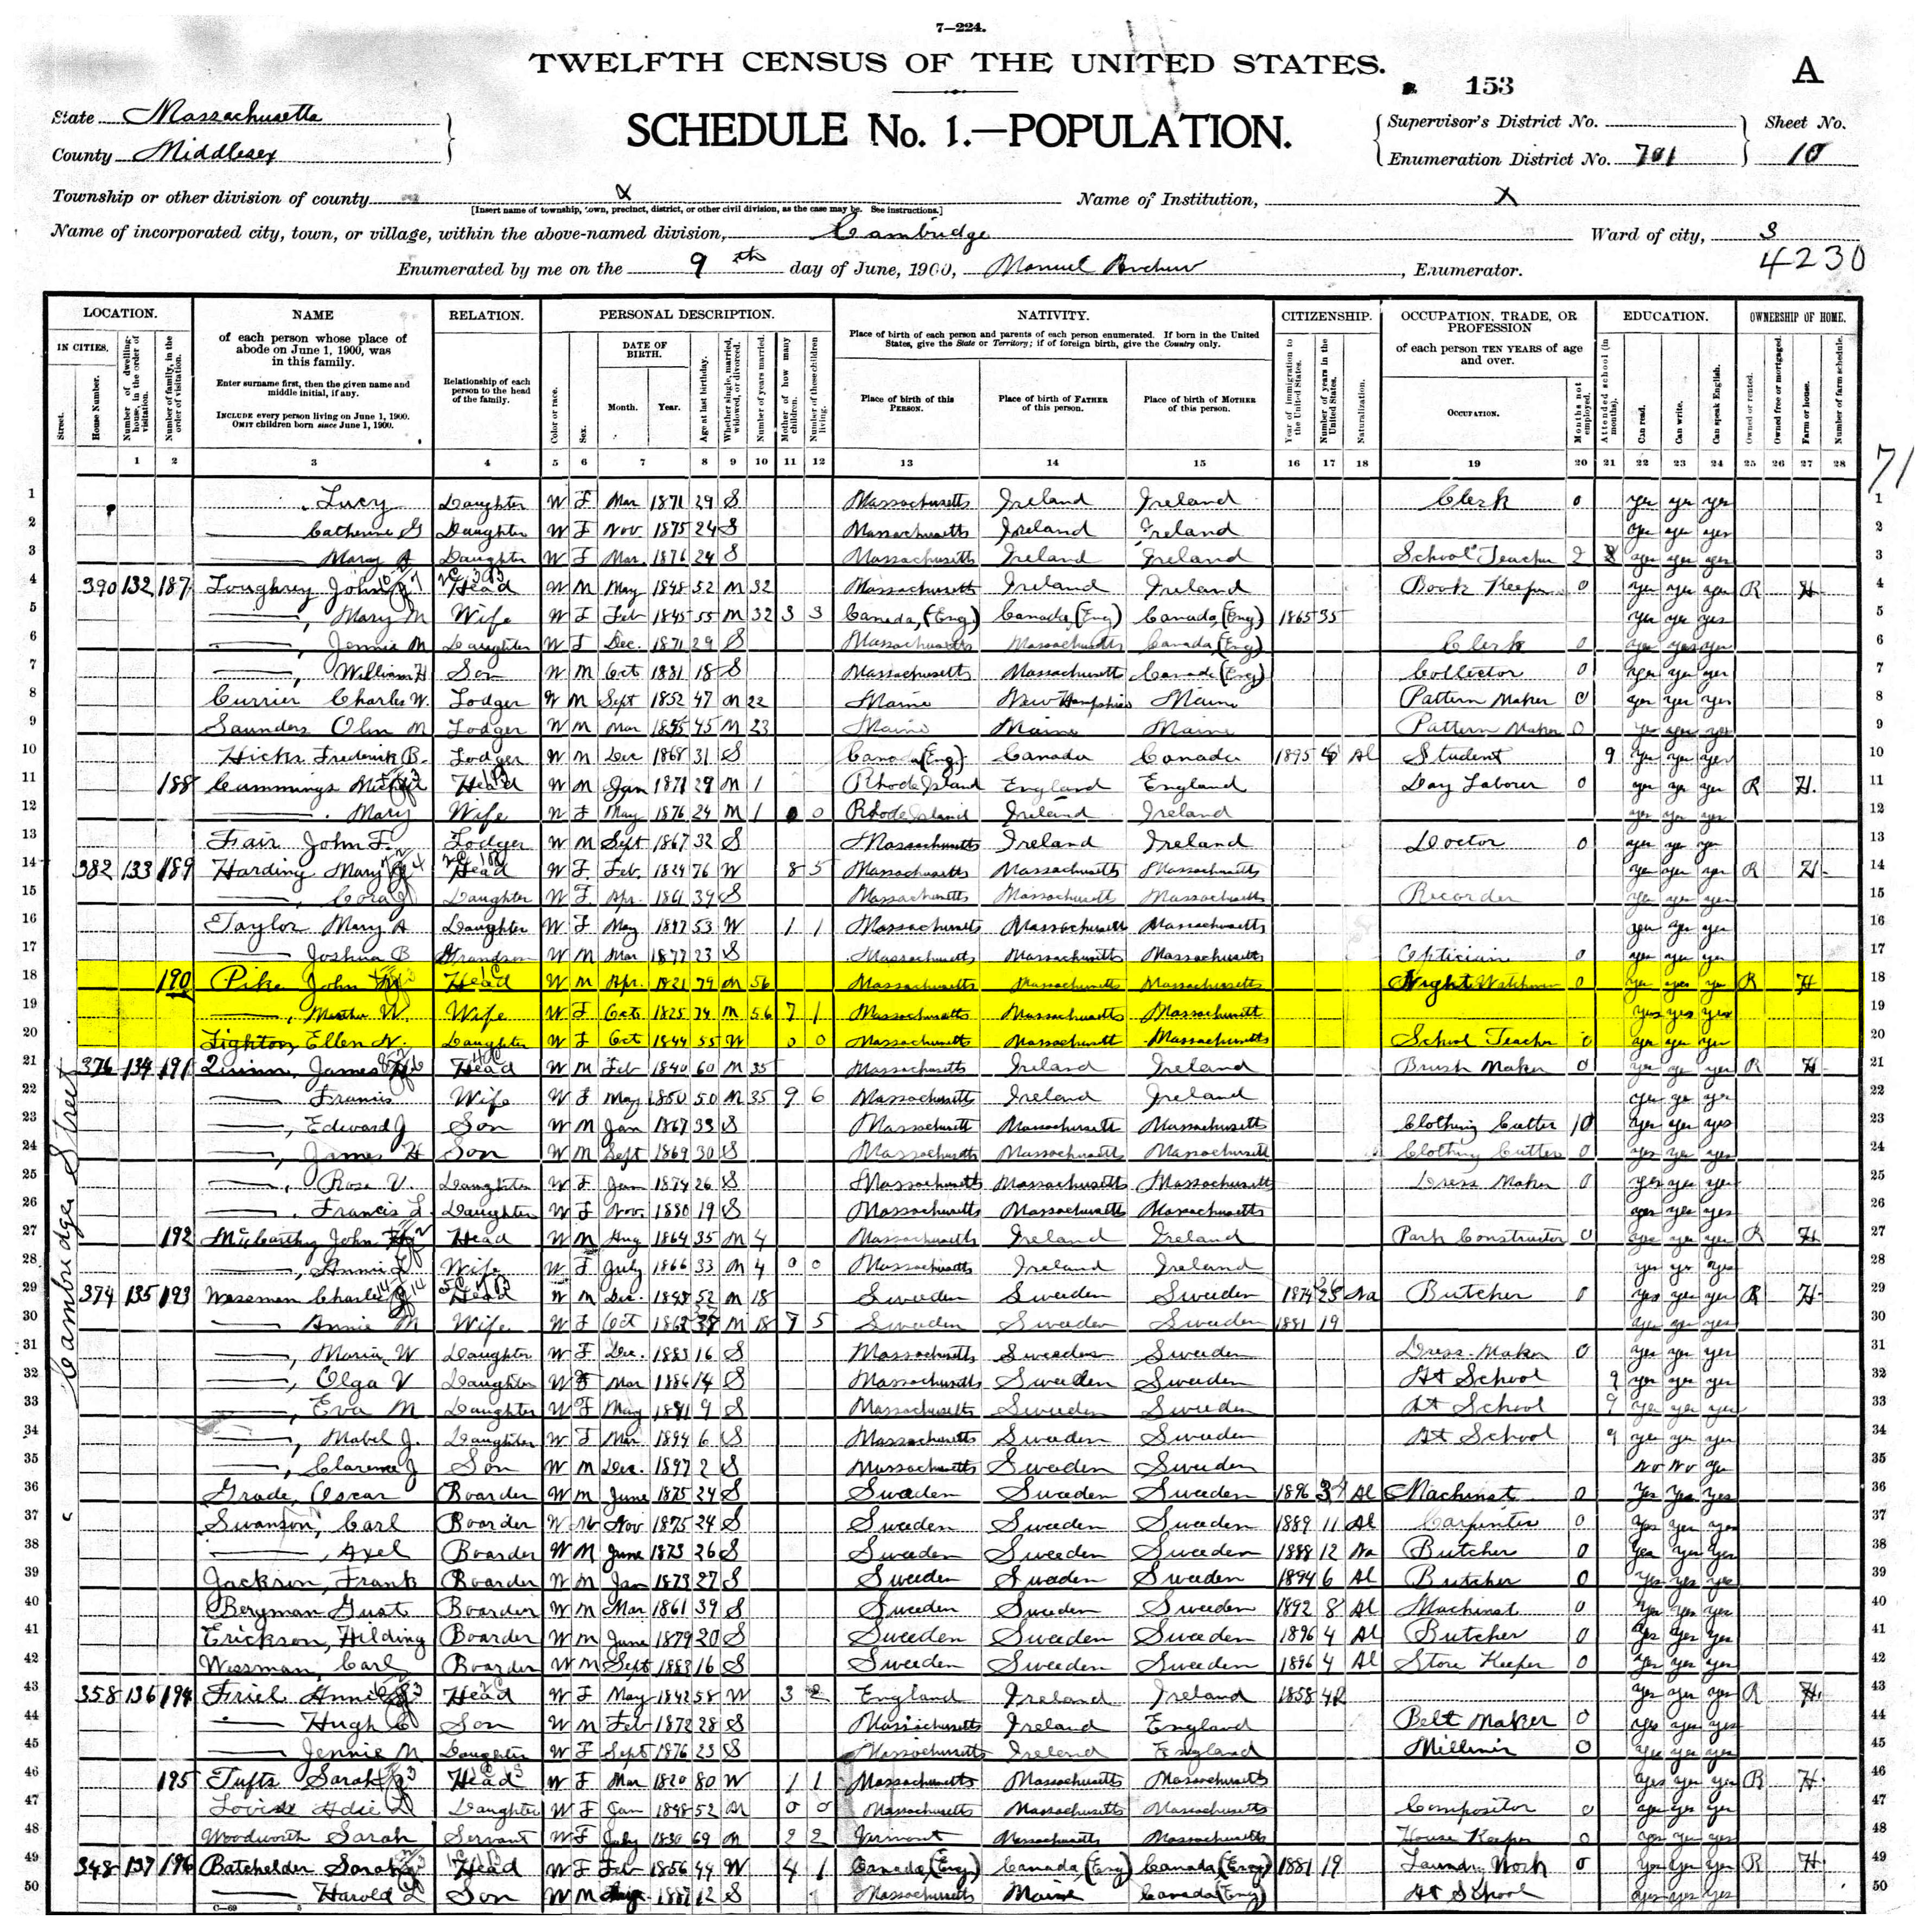 1900 Cambridge, Middlesex, MA census